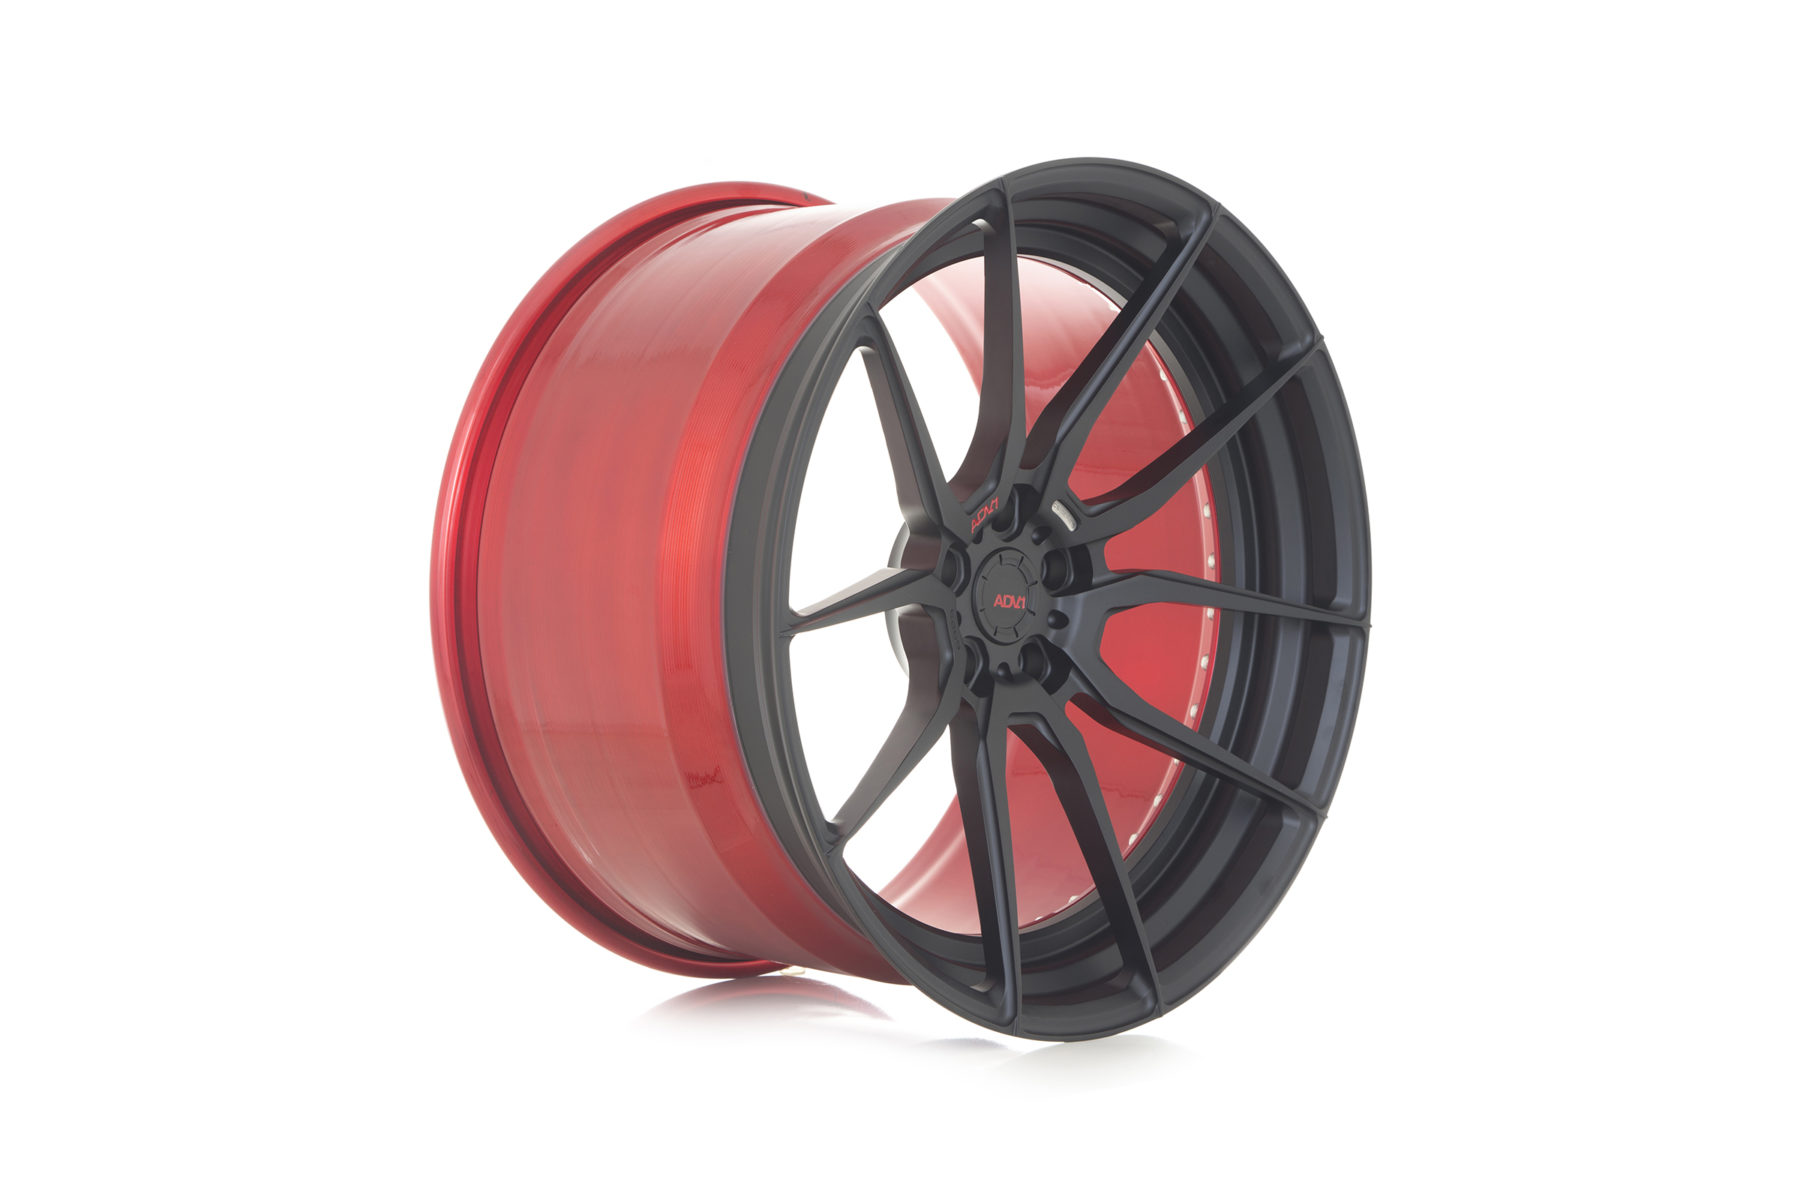 Click to enlarge image adv1-matte-black-red-custom-forged-aftermarket-exotic-car-luxury-rims-wheels-b.jpg